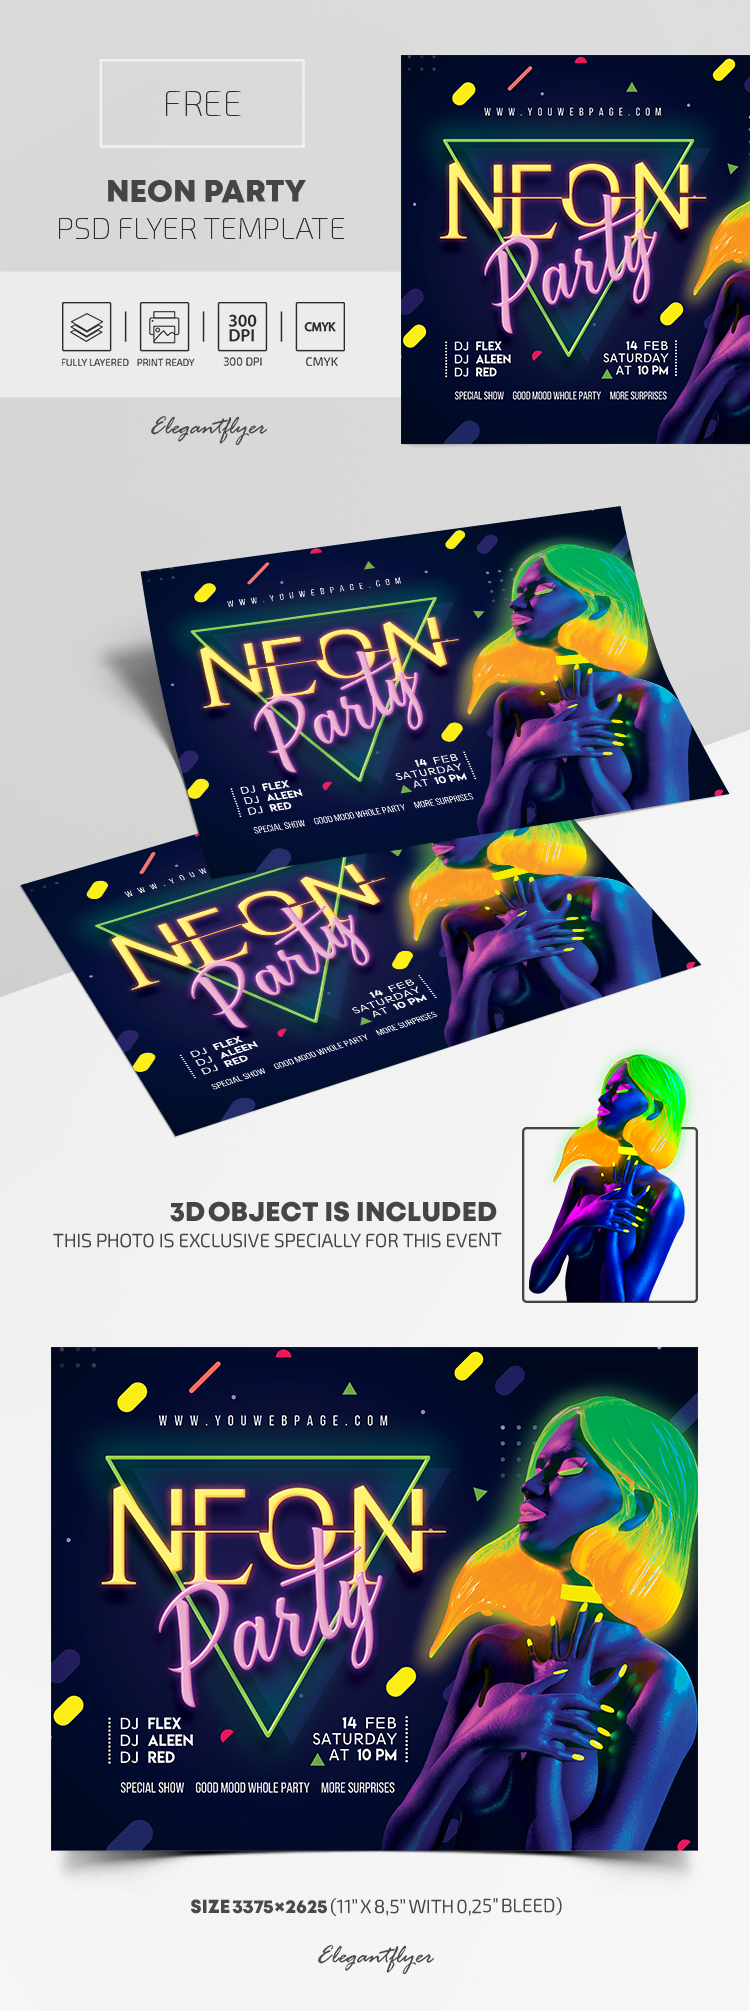 Neon Party – Free PSD Flyer Template